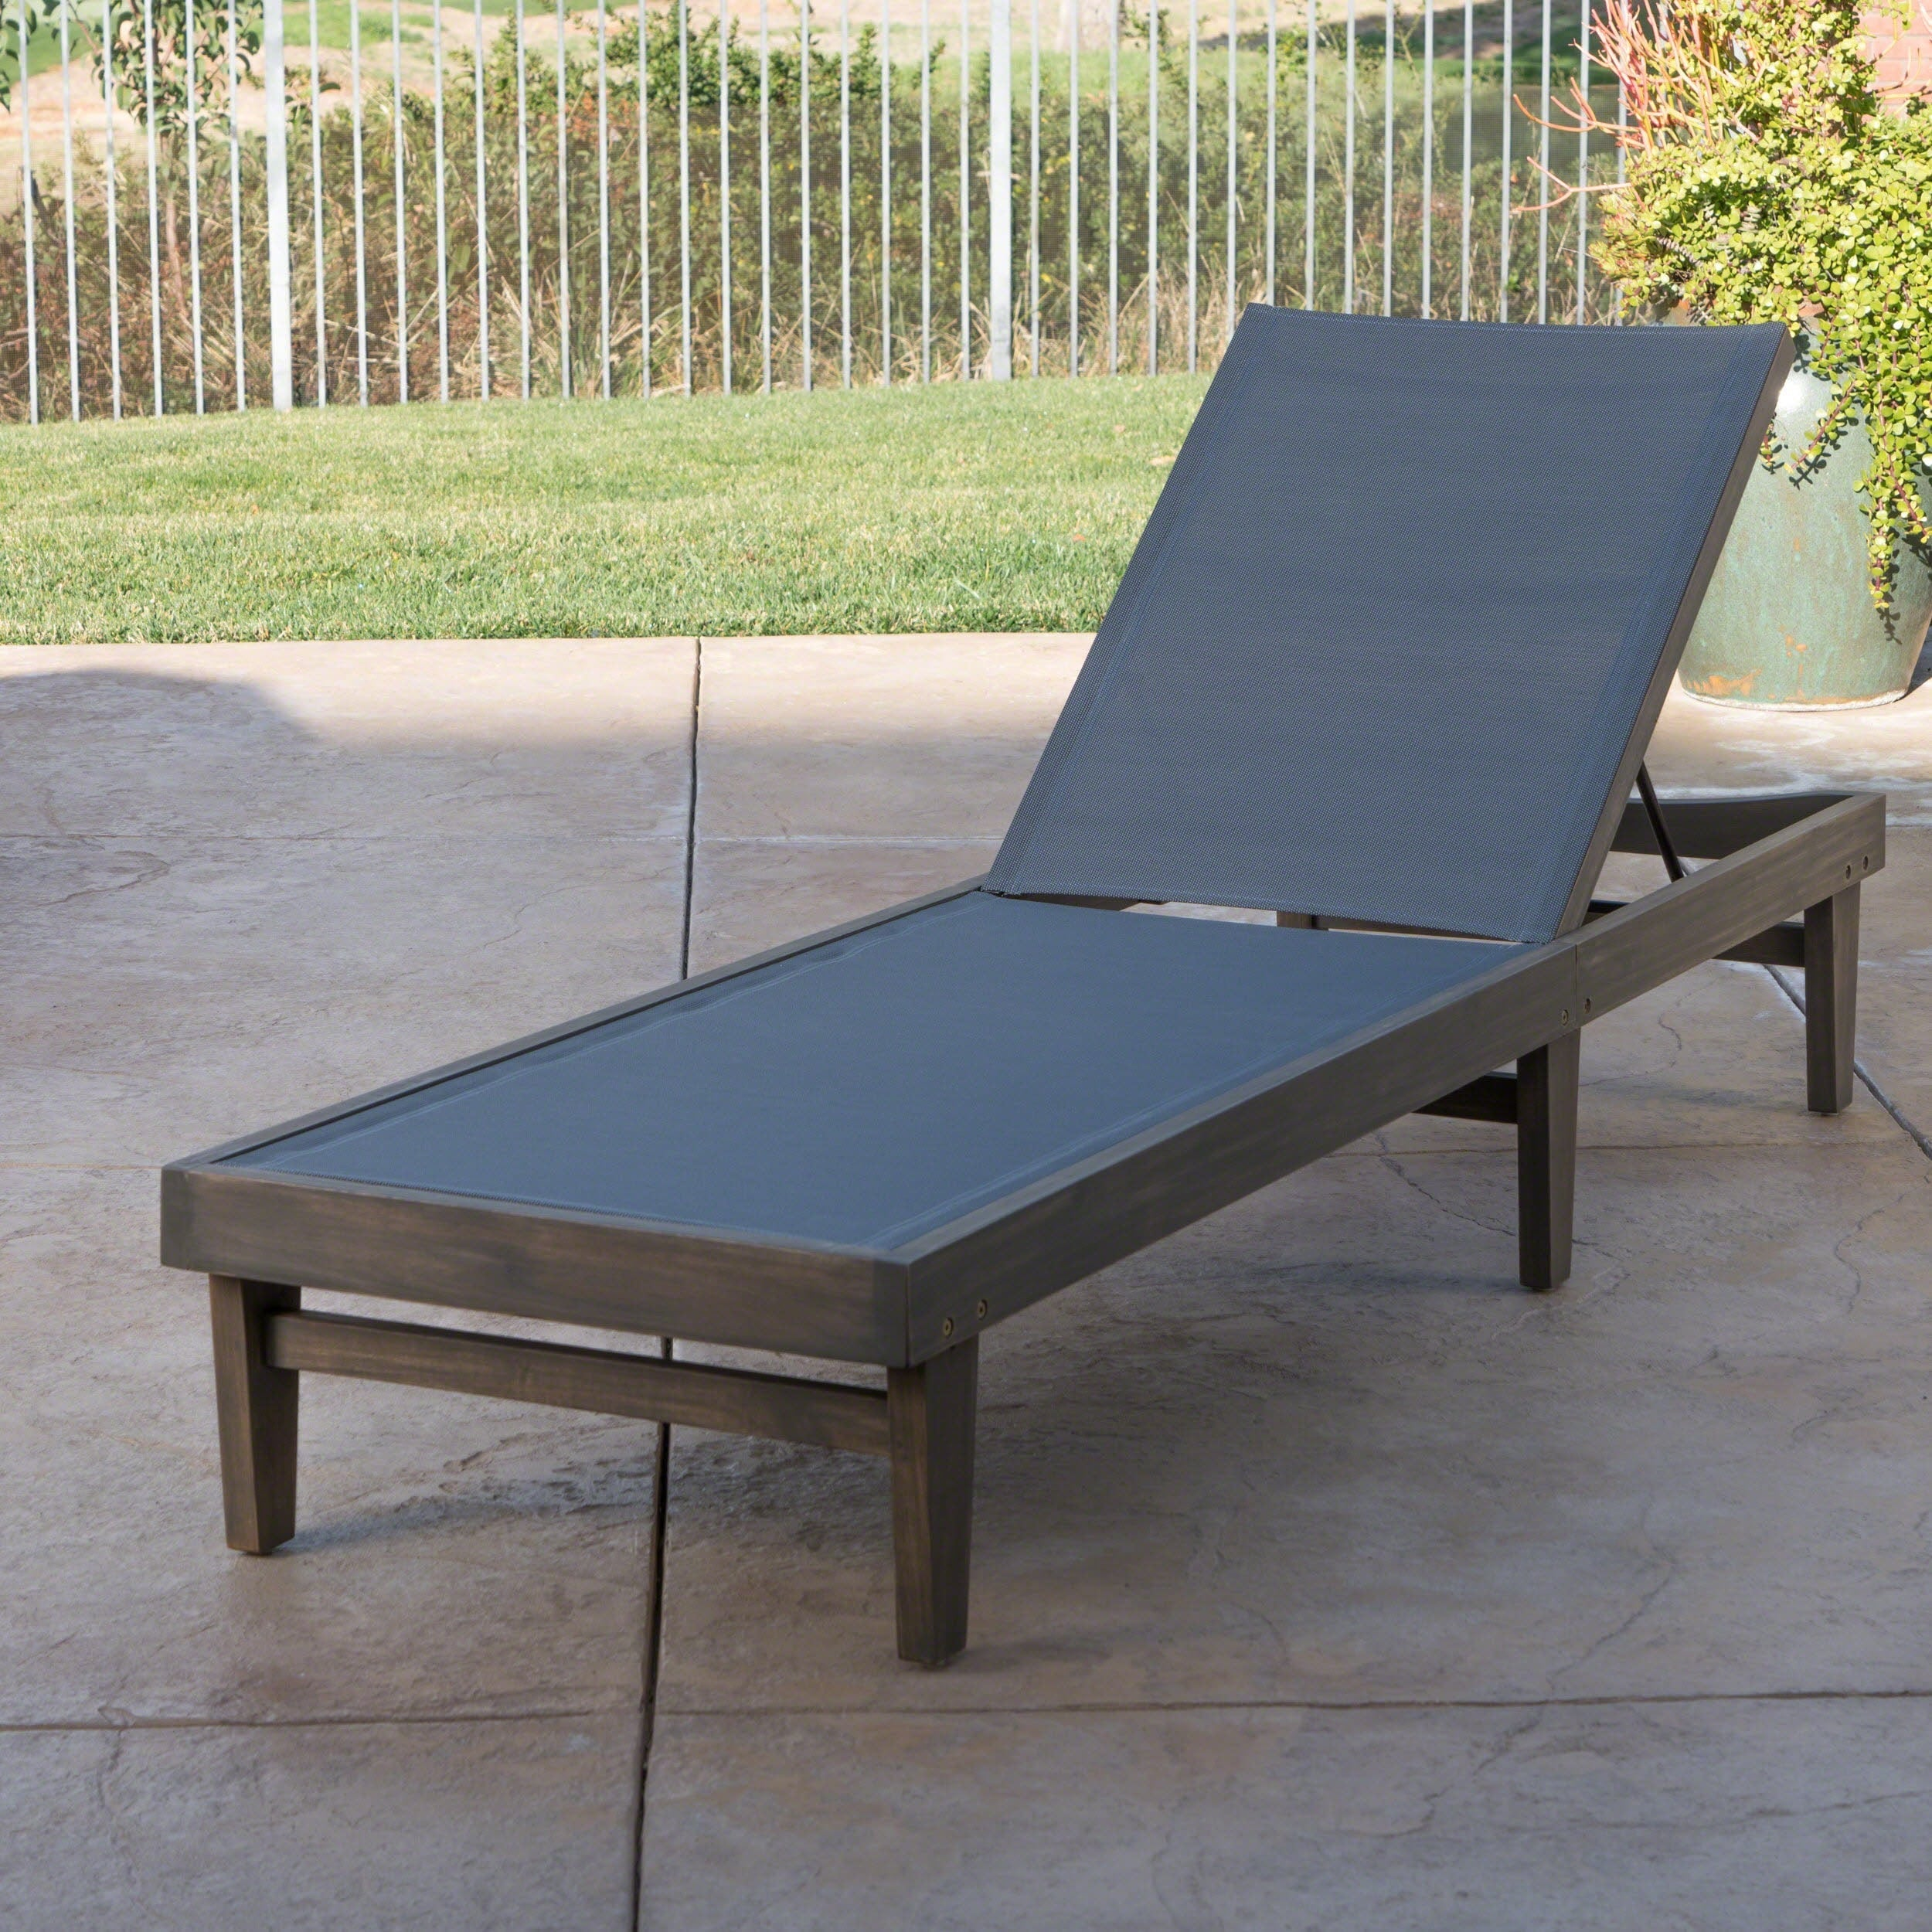 Summerland Outdoor Acacia Wood Mesh Chaise Lounge By Christopher Knight Home On Free Shipping Today 19798615